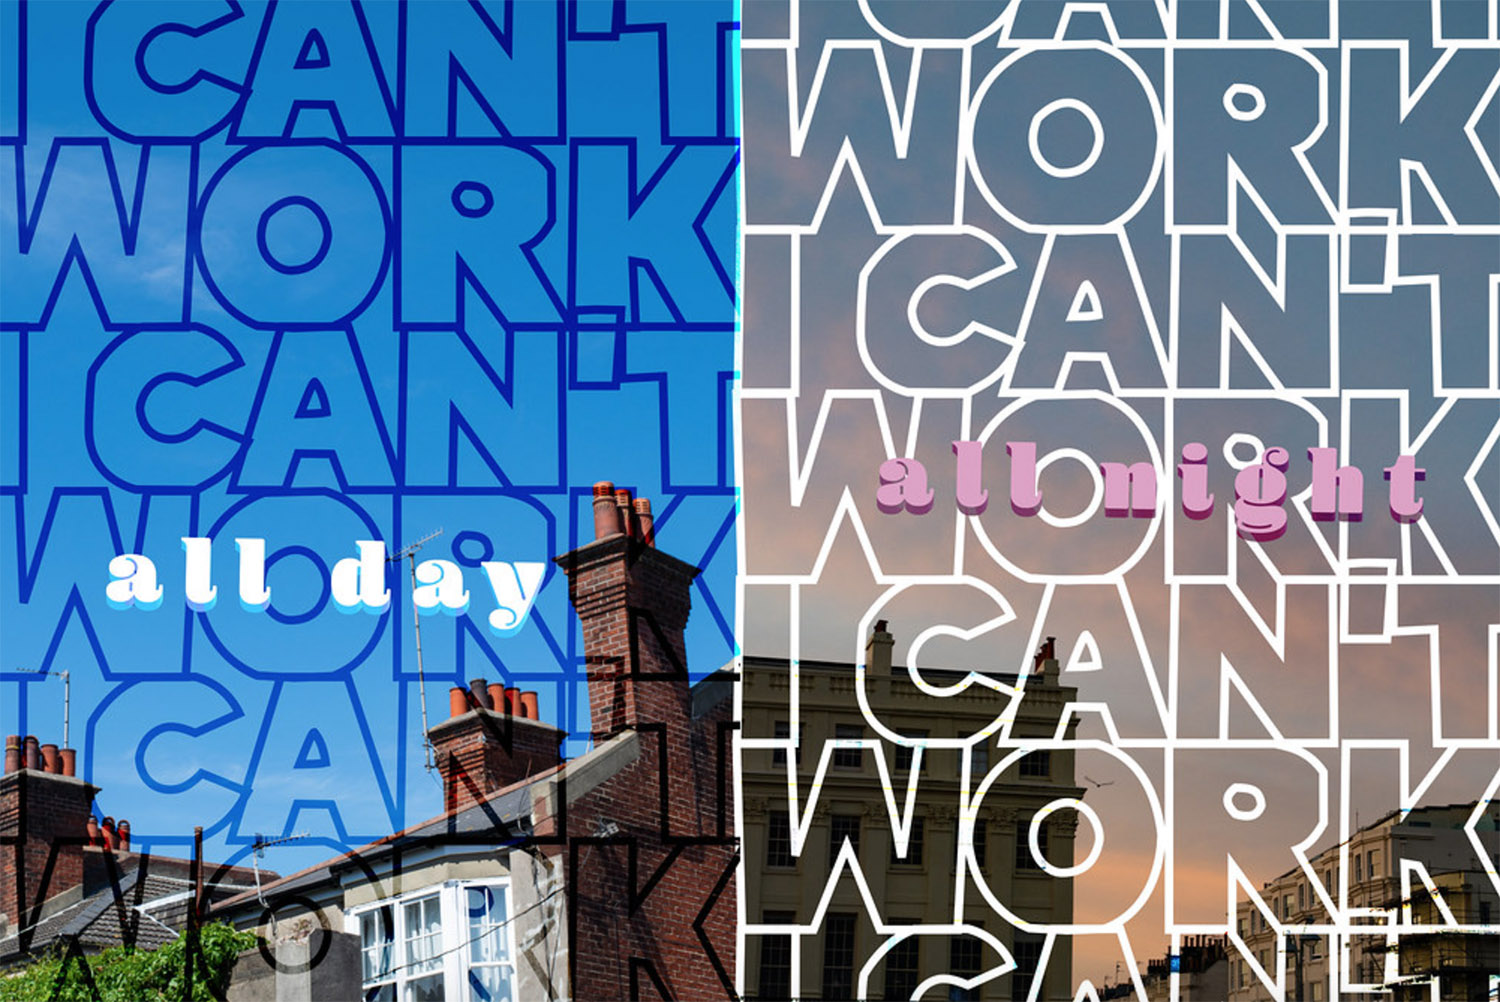 I can't work poster